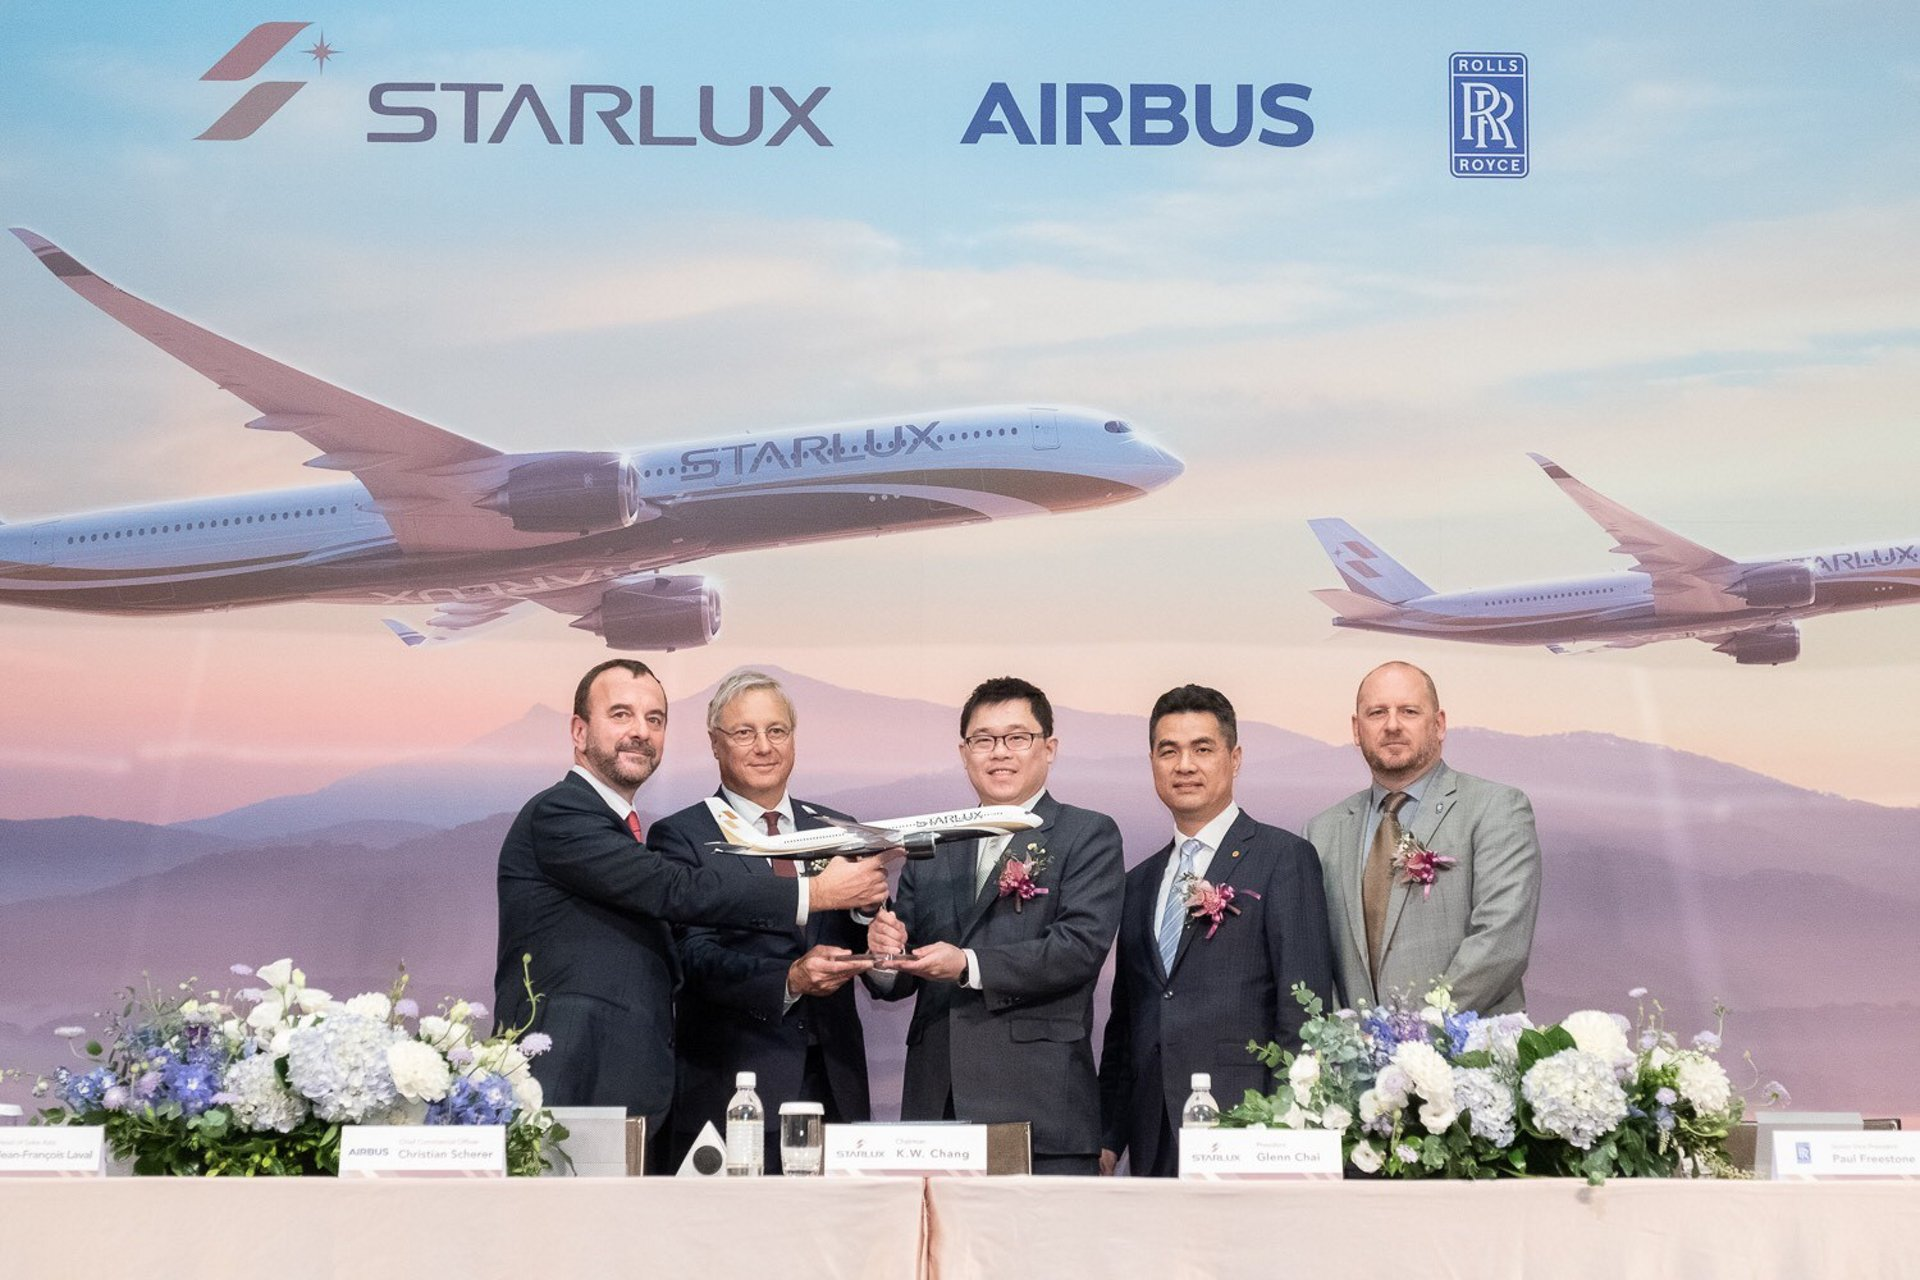 STARLUX Airlines signed a firm order for 17 Airbus A350 XWB aircraft; present at the signing ceremony were (from left to right): Jean-François Laval, Airbus Executive Vice President - Asia; Christian Scherer, Airbus Chief Commercial Officer; K.W. Chang, STARLUX Chairman; Glenn Chai, STARLUX President; and Paul Freestone, Rolls-Royce Senior Vice President - Customers